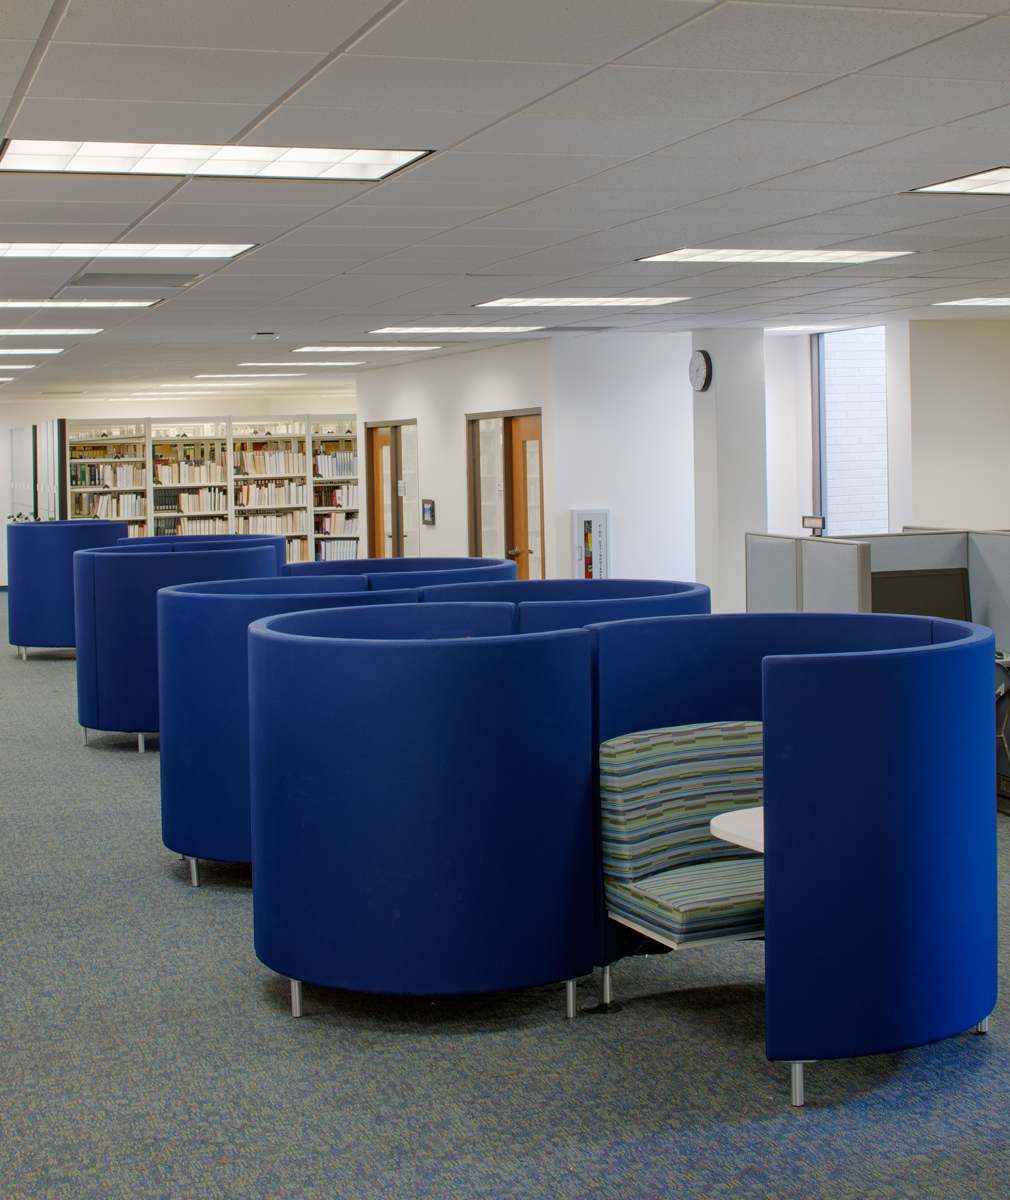 Gould study pods